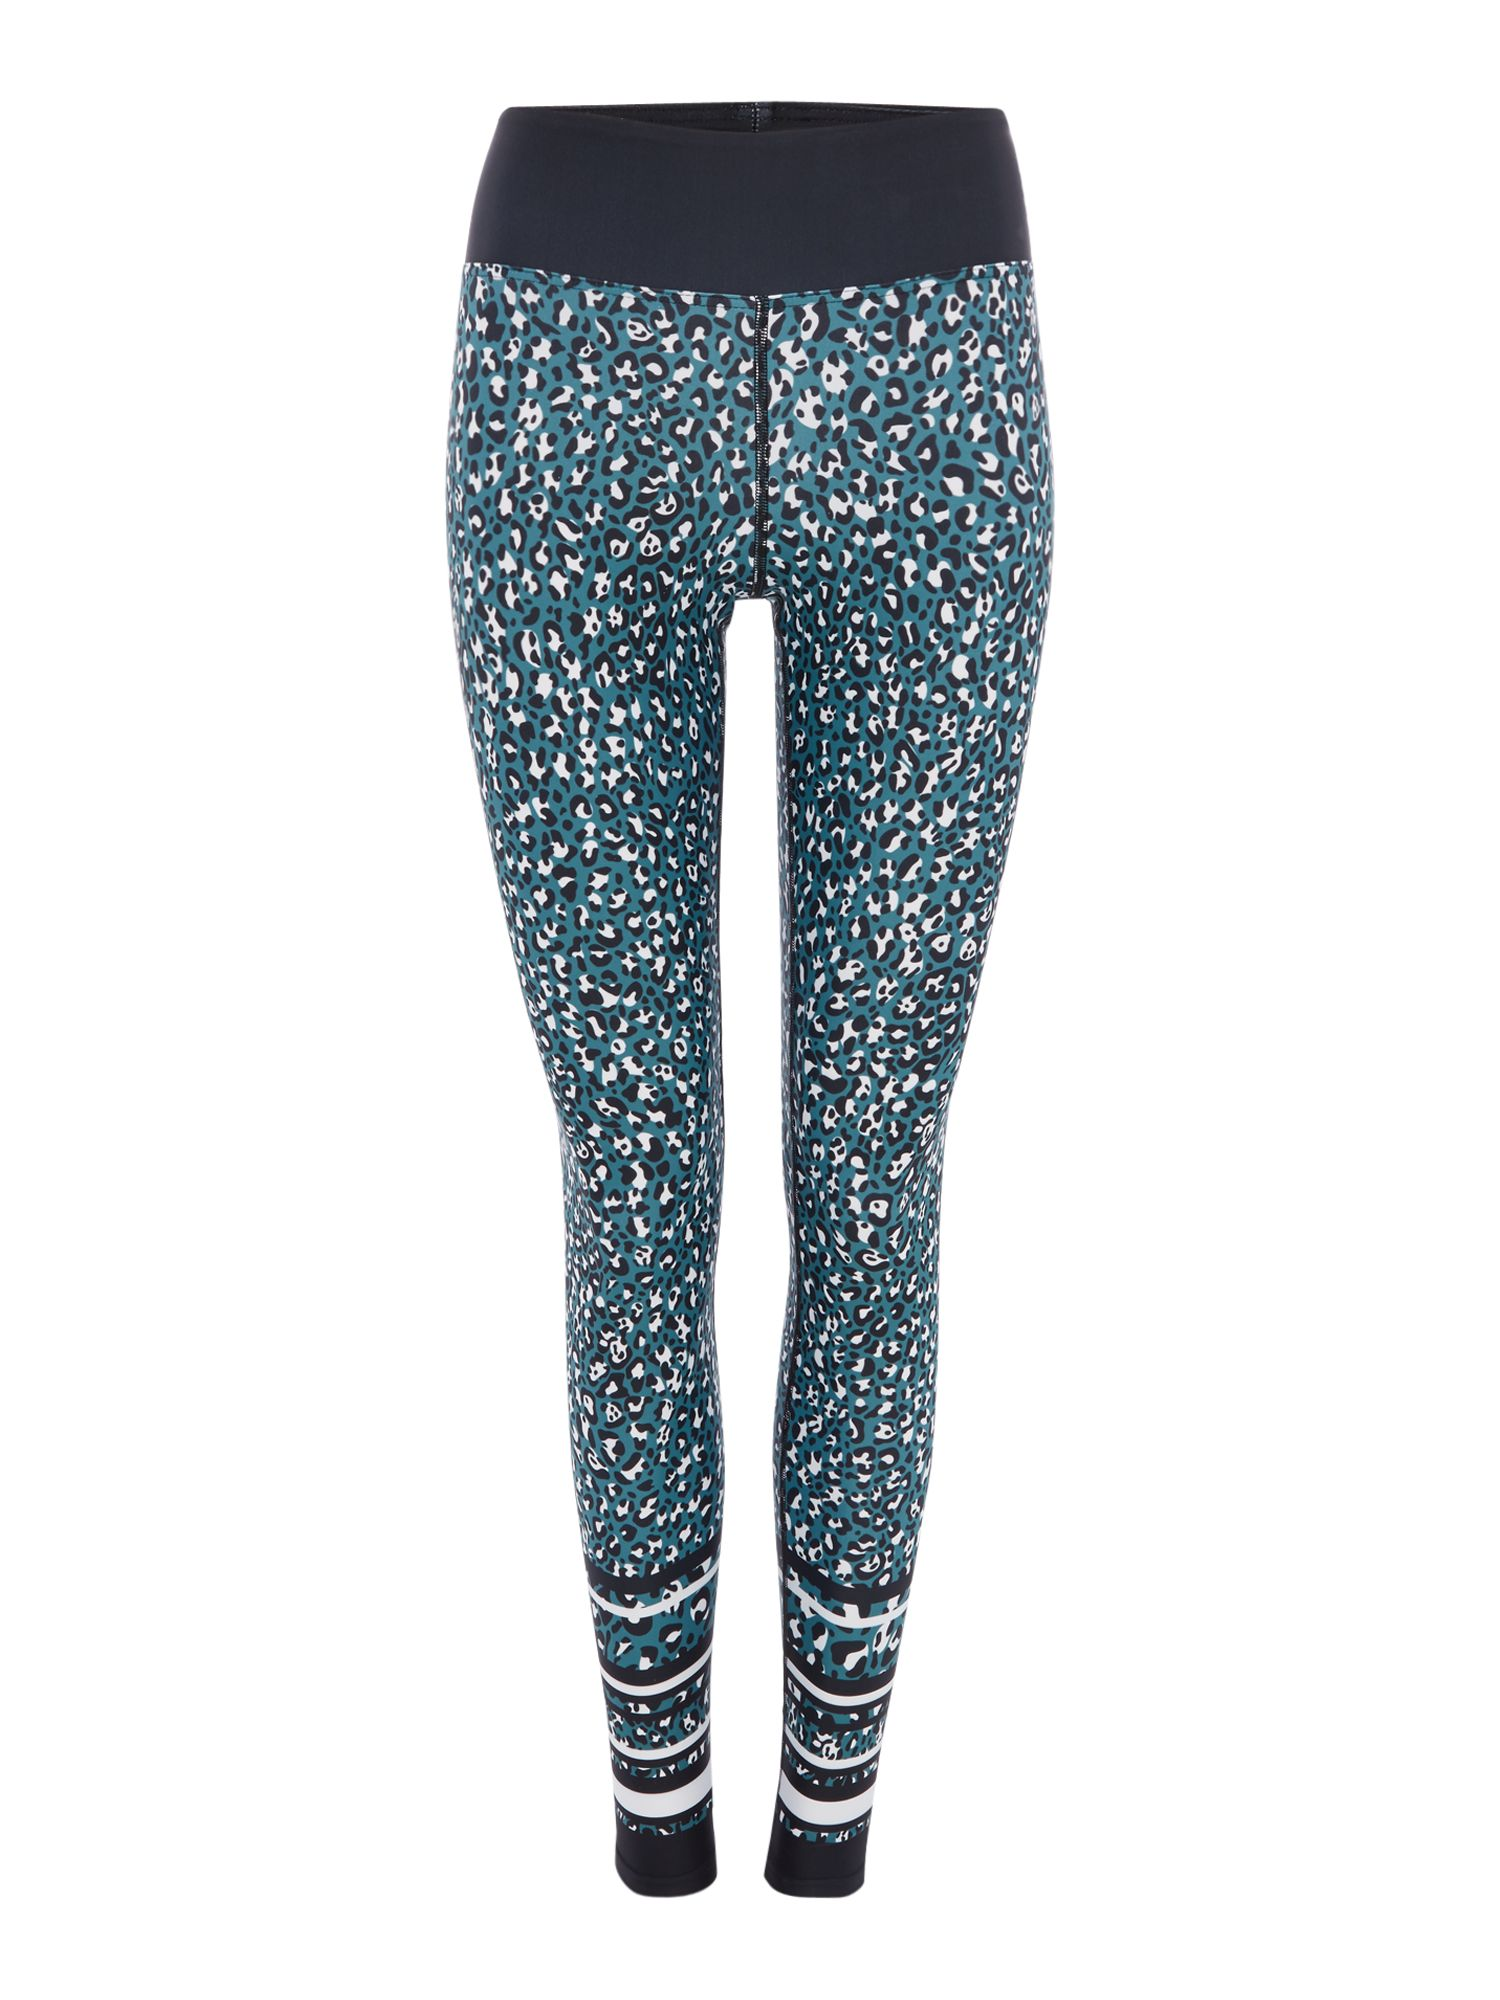 Dharma Bums Carazamba leggings, Green